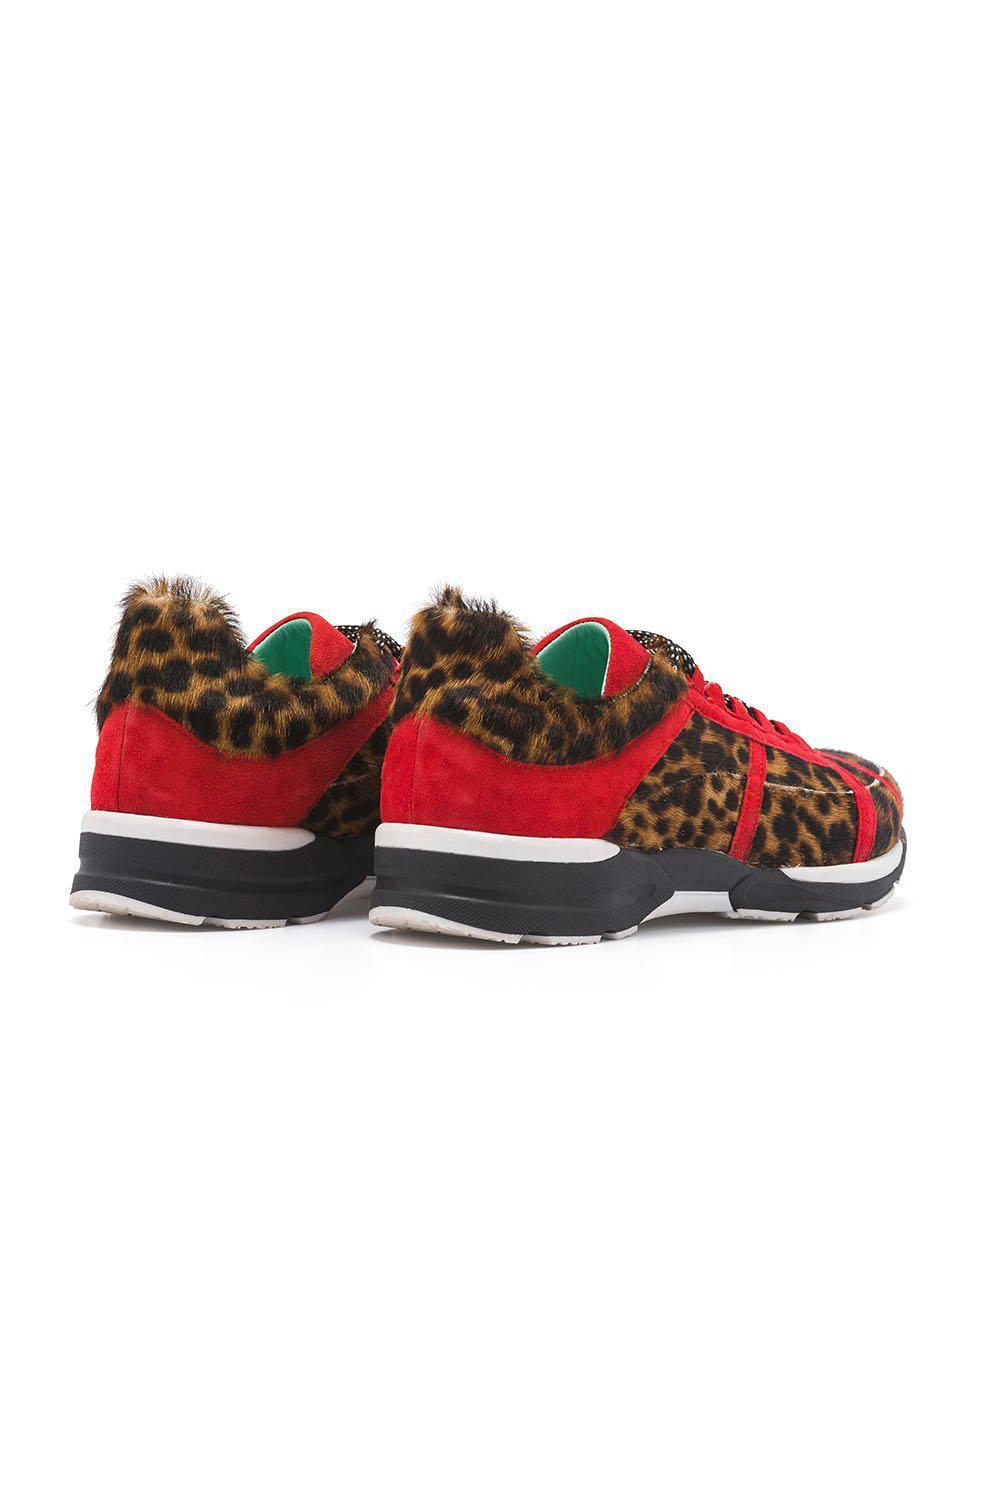 Running shoes in leopard printed leather